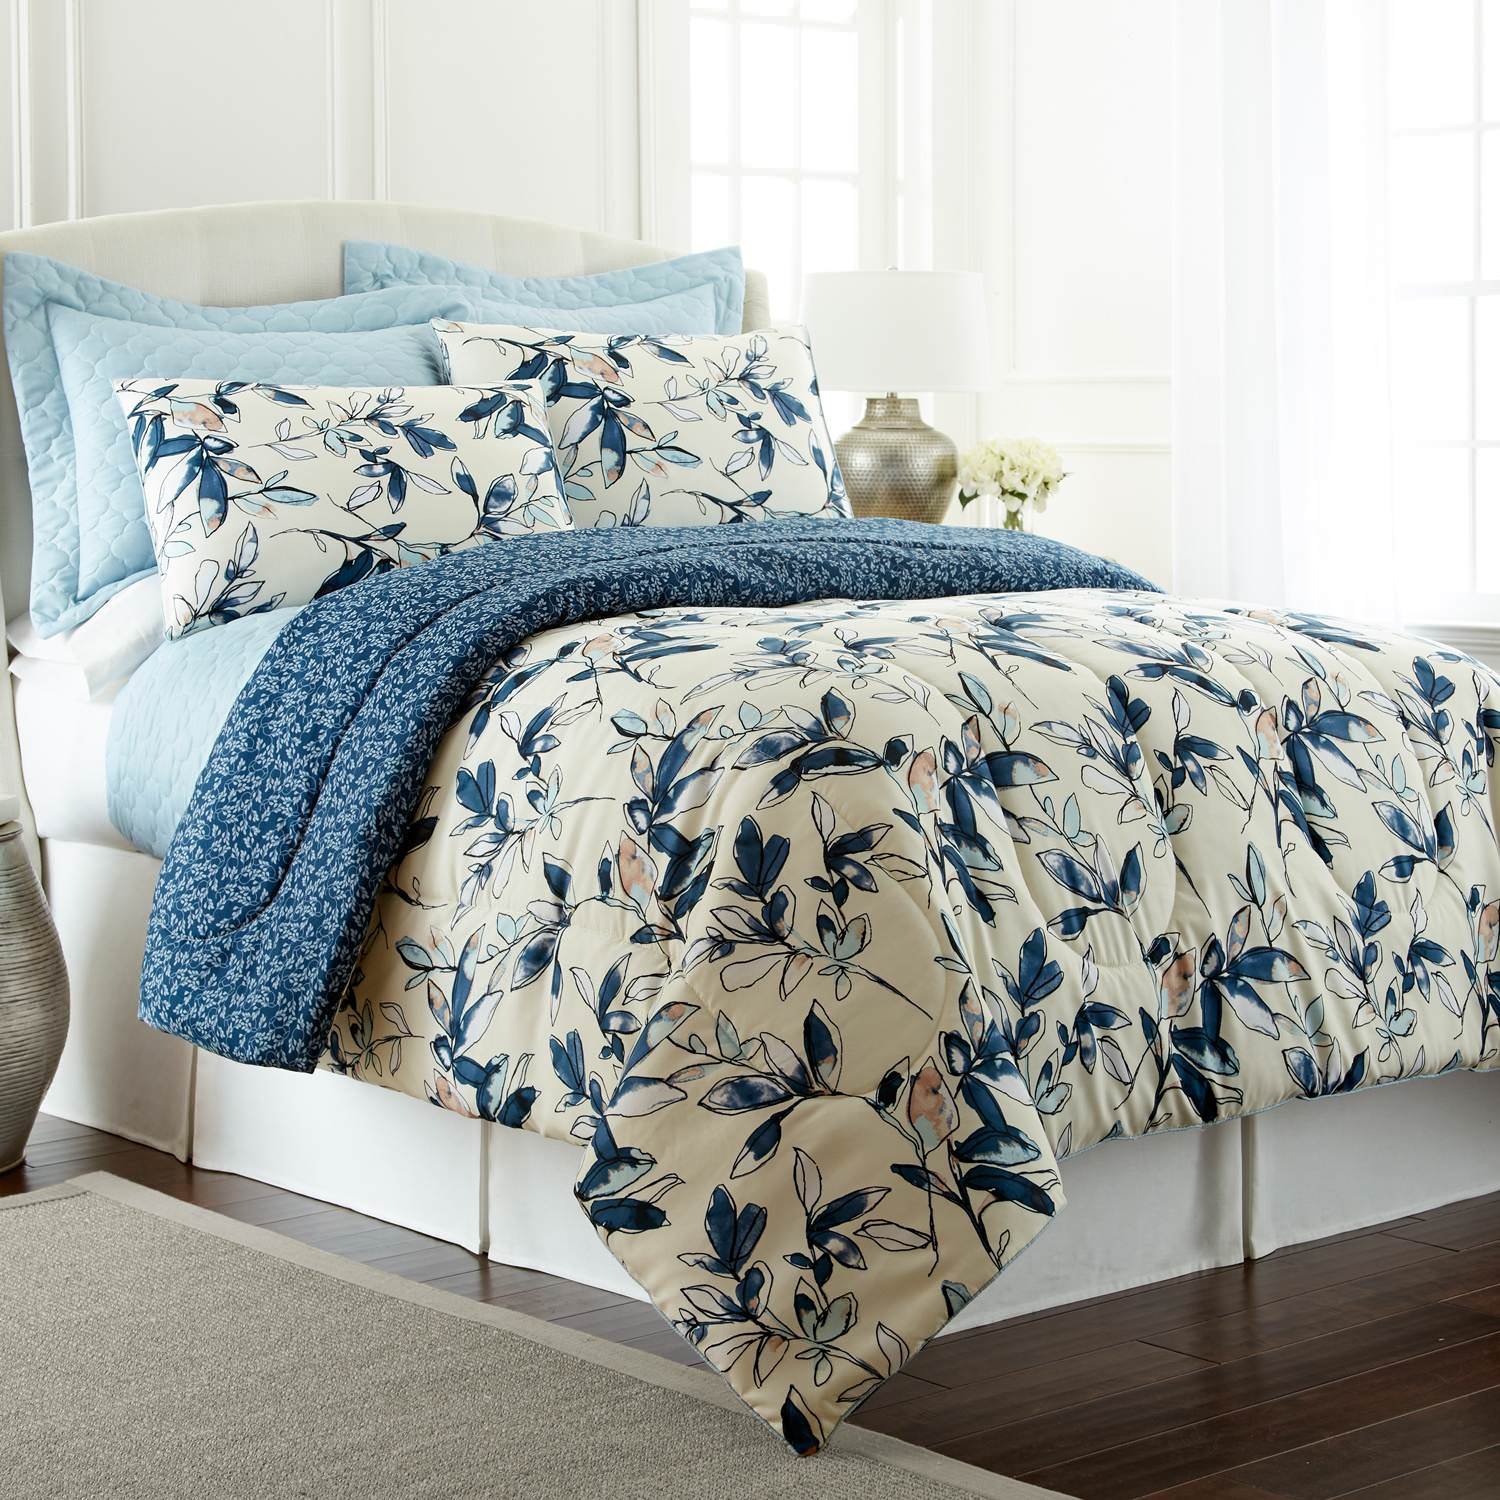 6 Piece Comforter/Coverlet Set -Mianka